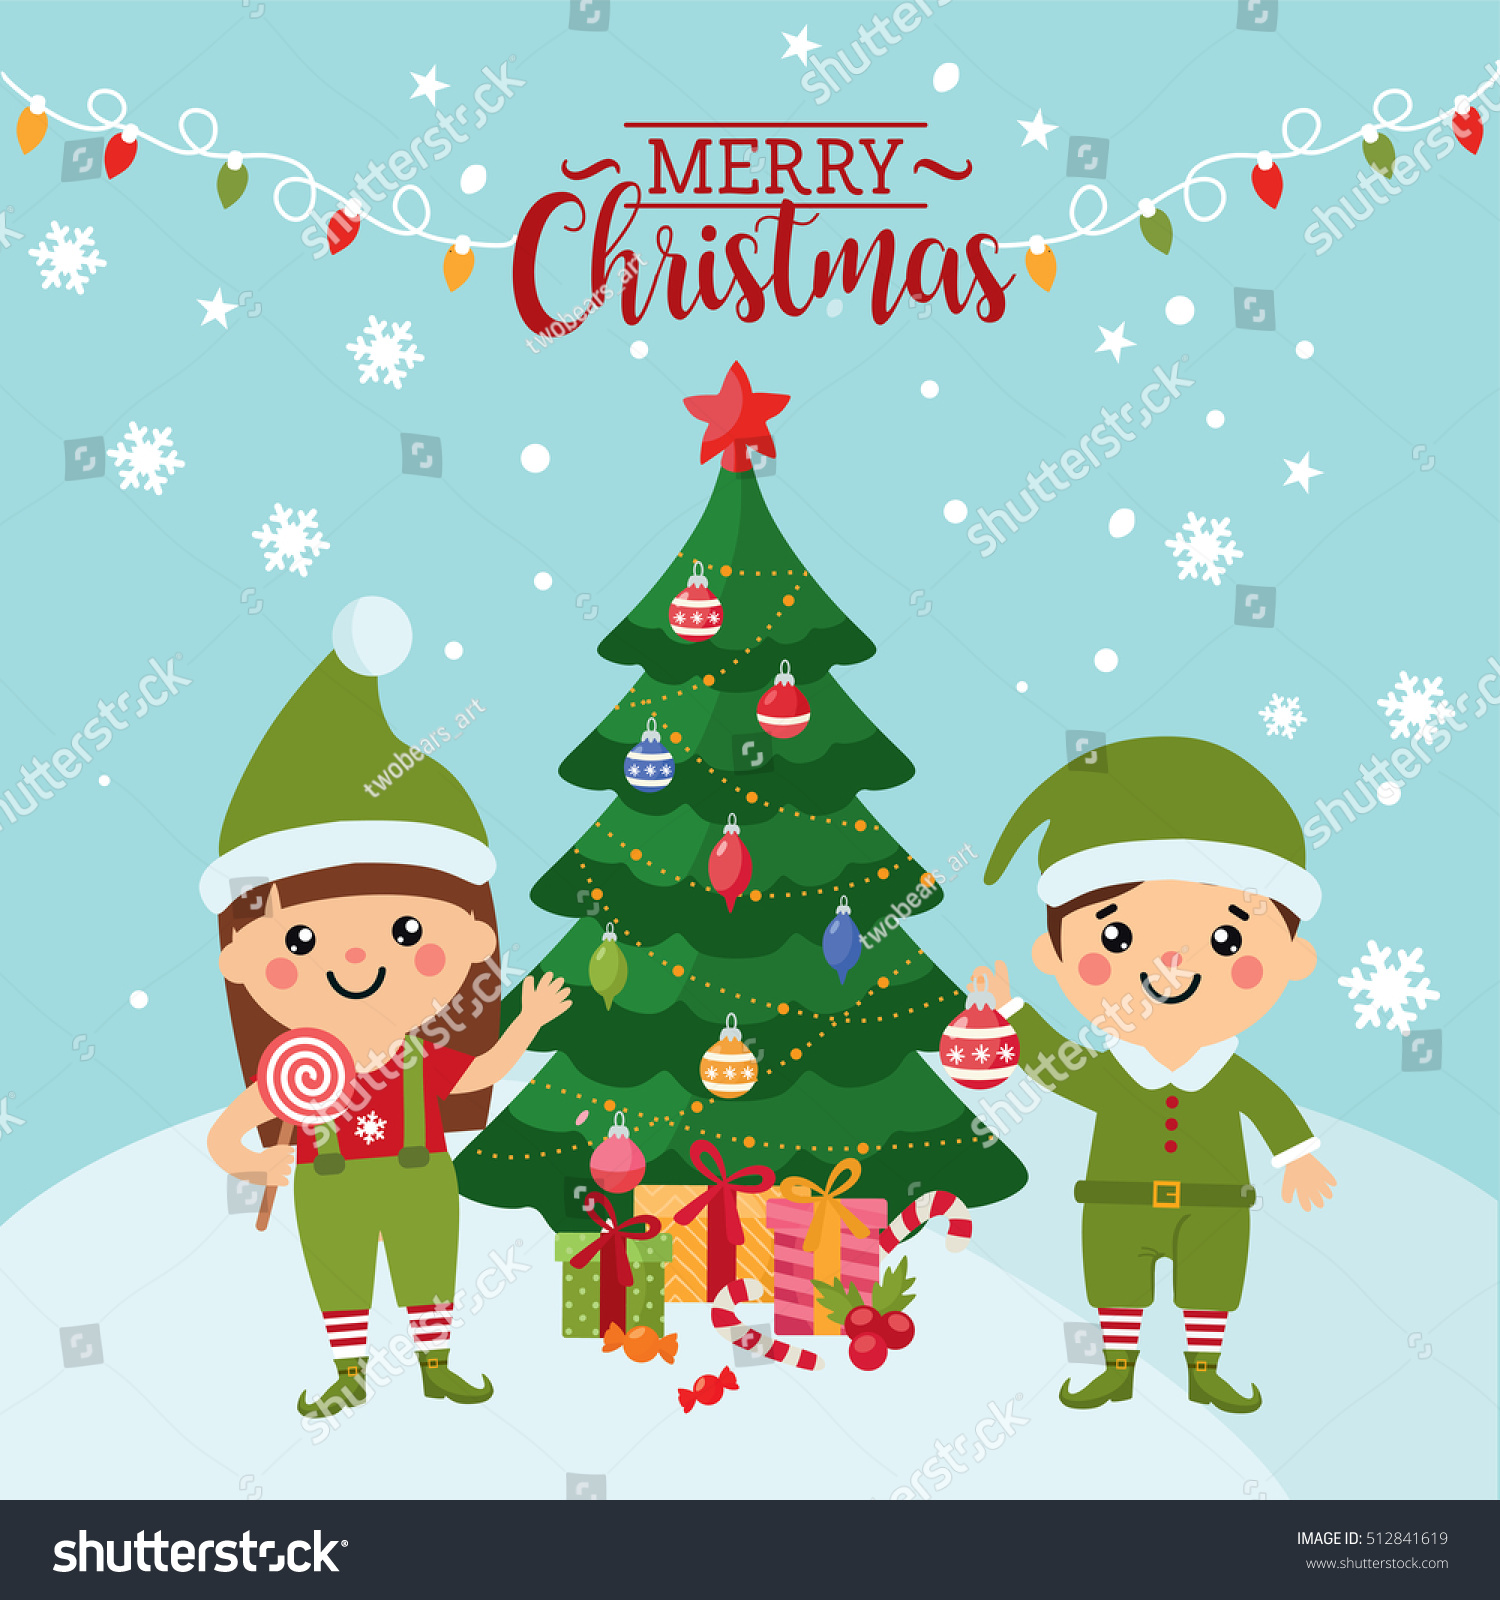 Merry Christmas Greeting Card Cute Kids Stock Vector